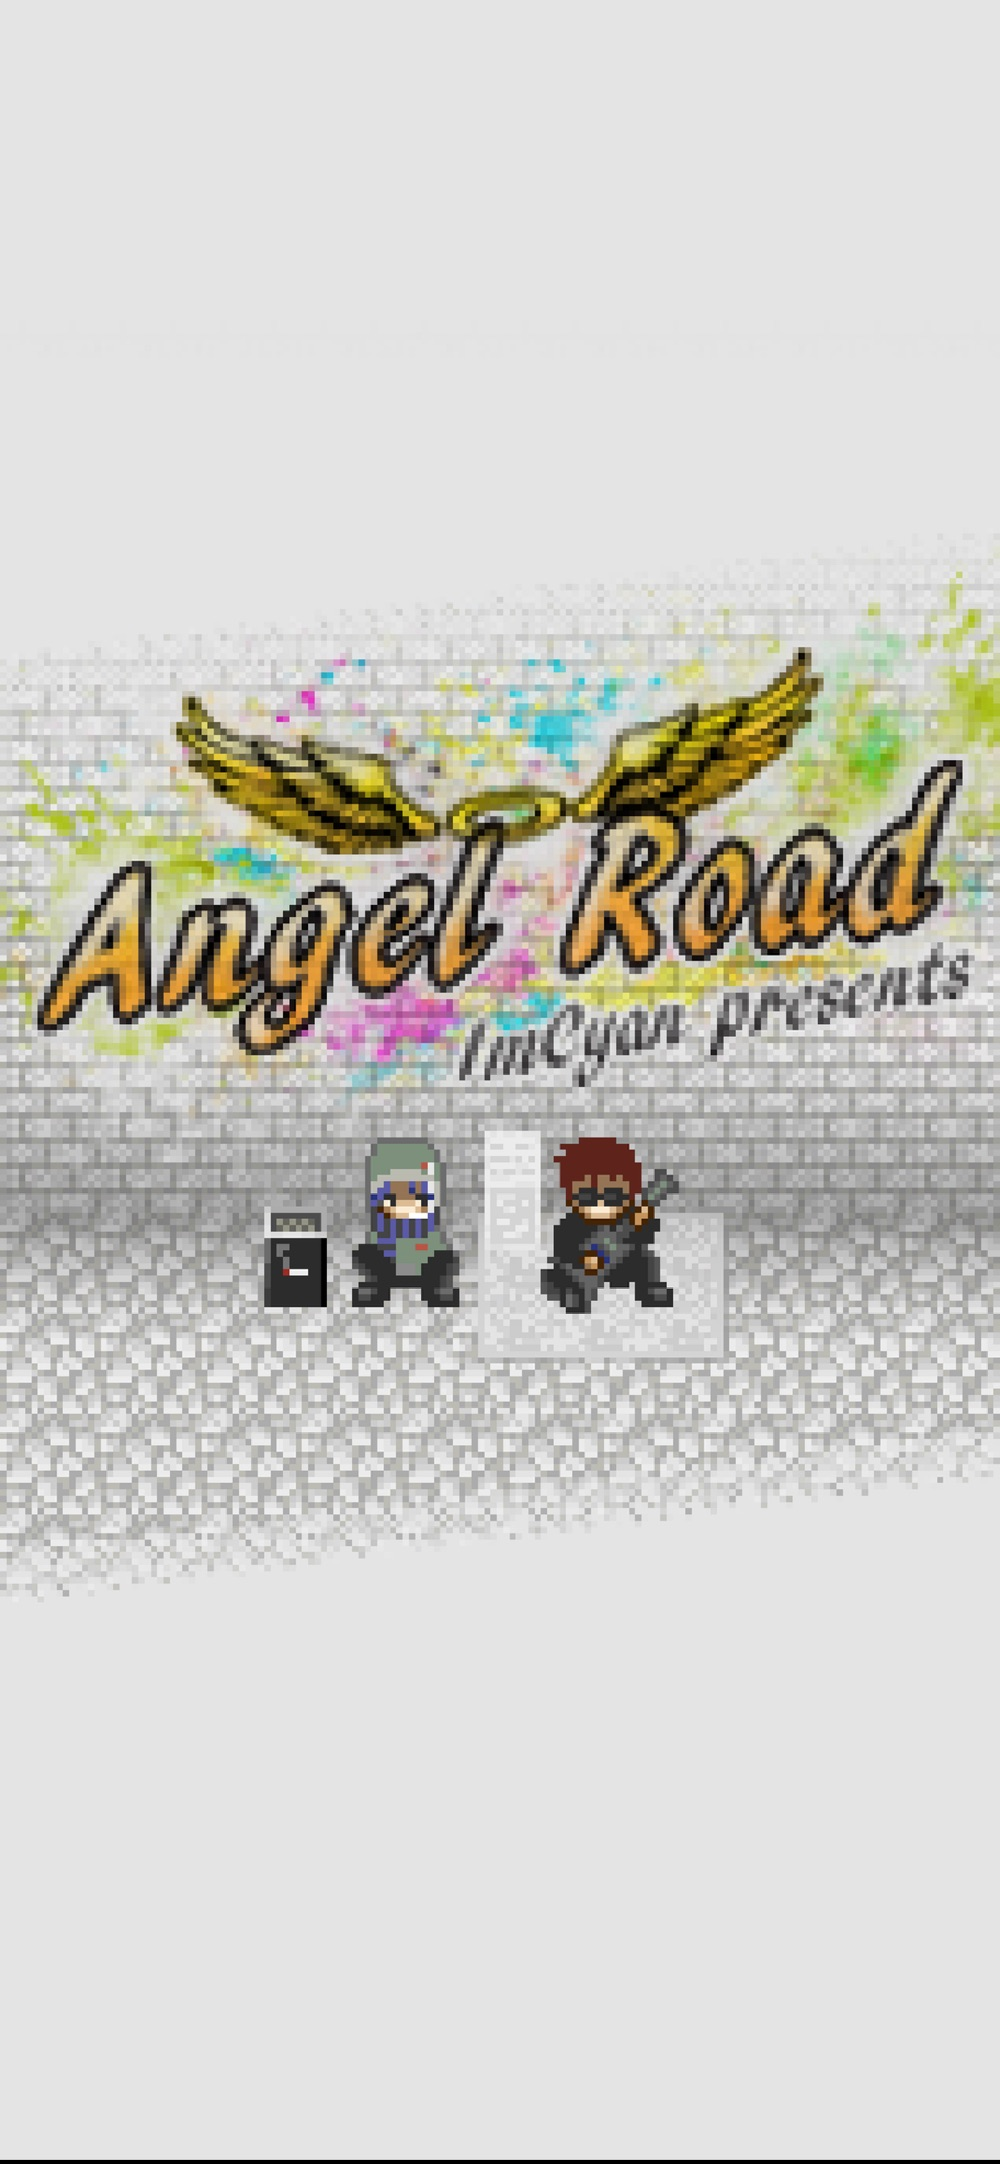 Angel Road hack tool